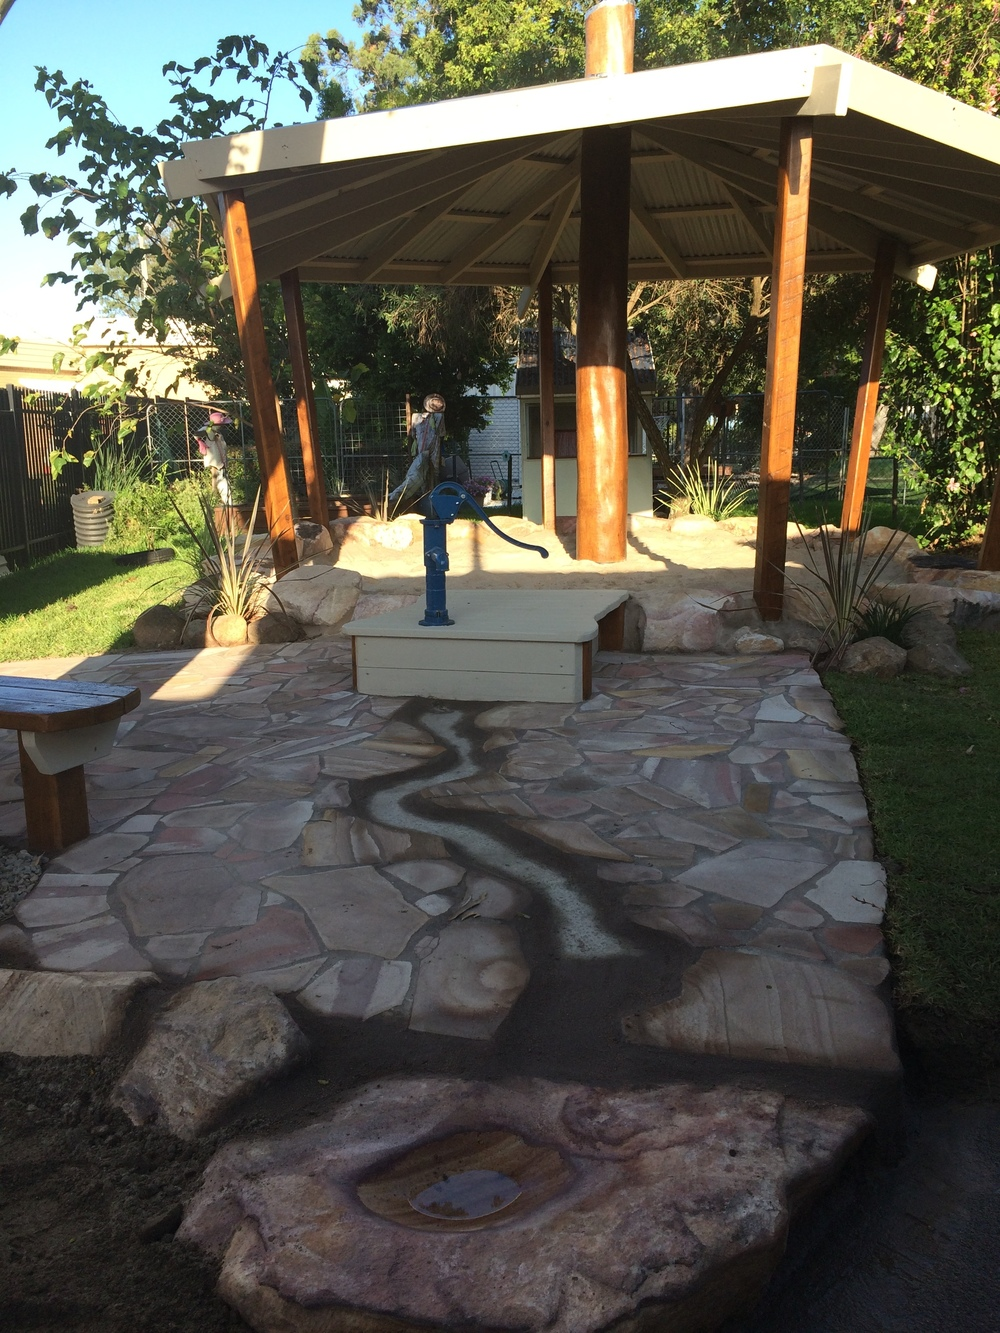 This Hand water Pump has a Under-Ground collection Tank that is connected to the existing Kindies Water Tank. Add easy to maintain crazy-pave Sandstone and Wellah  fun for all.